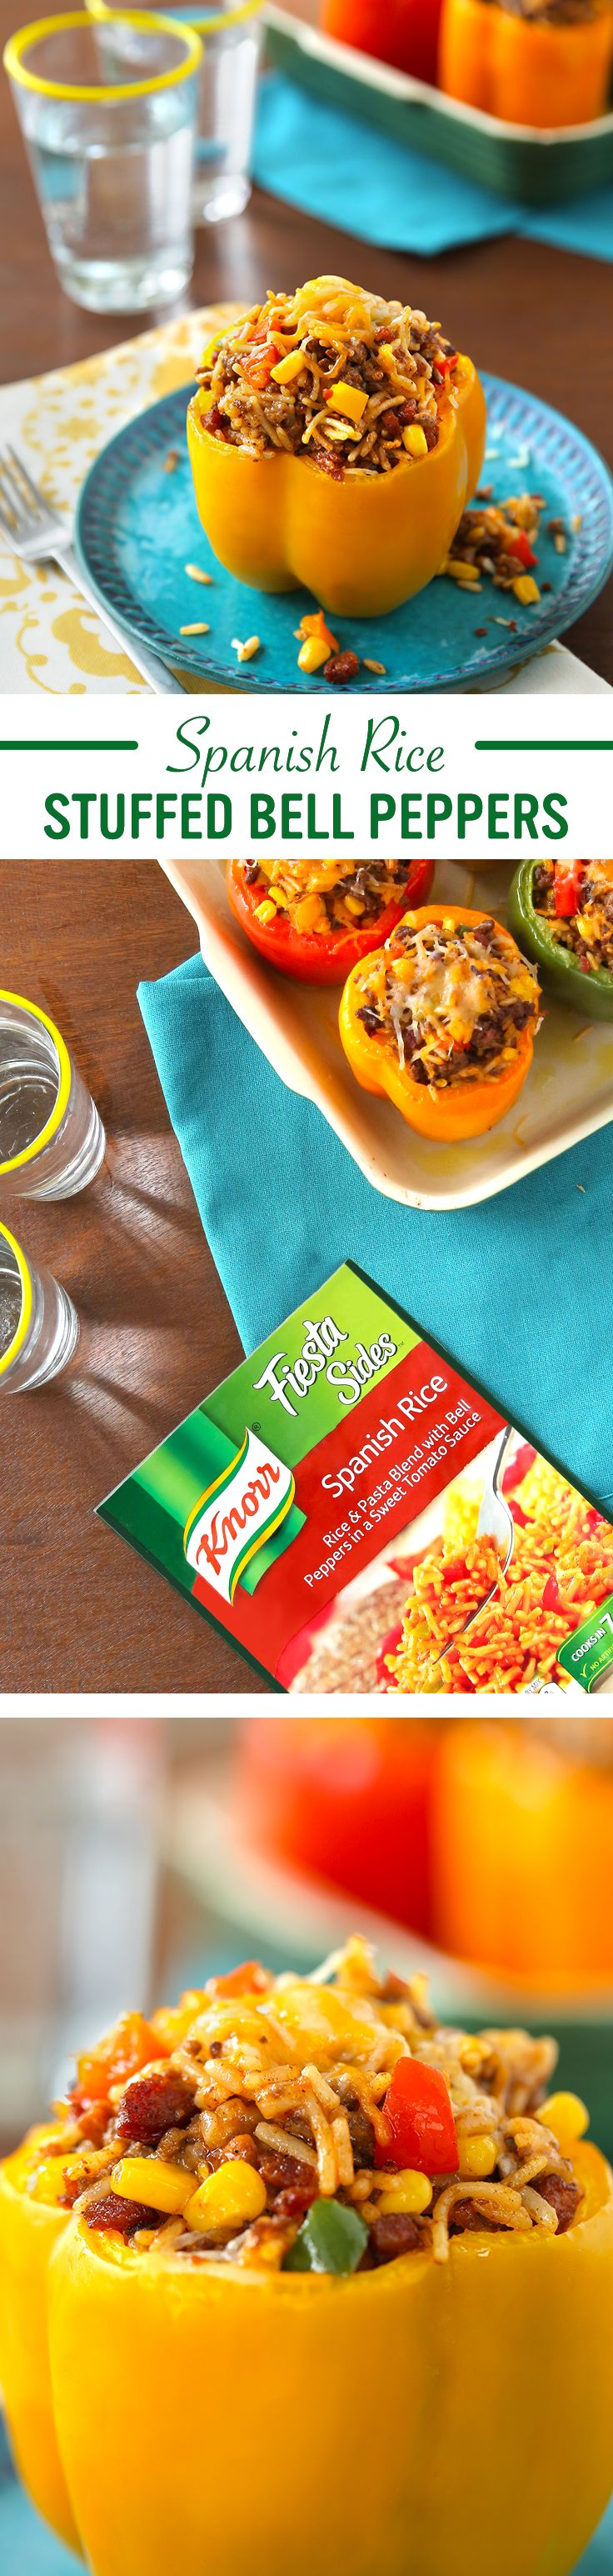 Knorr®'s Fiesta Sides™ - Spanish Rice flavor makes every meal a fiesta for your familia. Prepare this delicious recipe for Spanish Rice Stuffed Bell Peppers tonight: 1. Cook ground beef & chorizo. Add corn 2. Stir in Knorr® Fiesta Sides™ - Spanish Rice 3. Stuff peppers, sprinkle w/ cheese, & bake. Serve & enjoy!